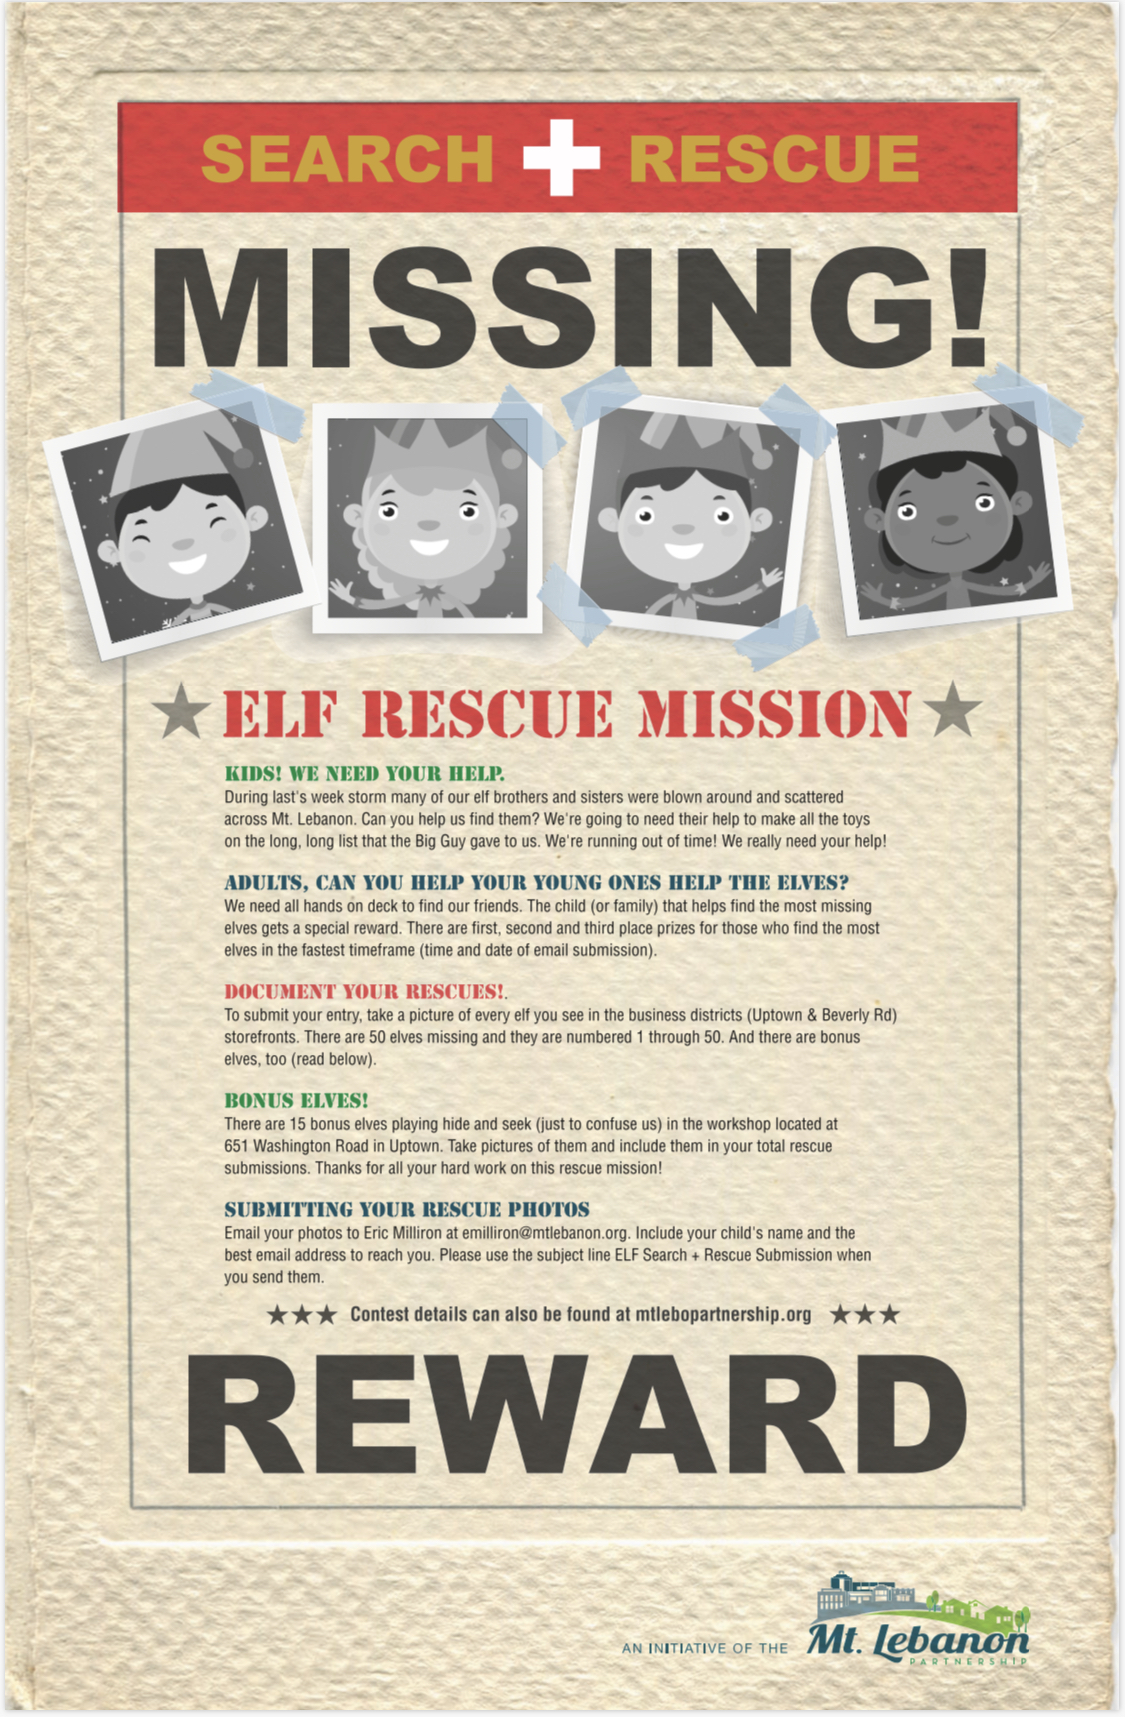 Here's everything you need to know about the Elf Search + Rescue Mission!